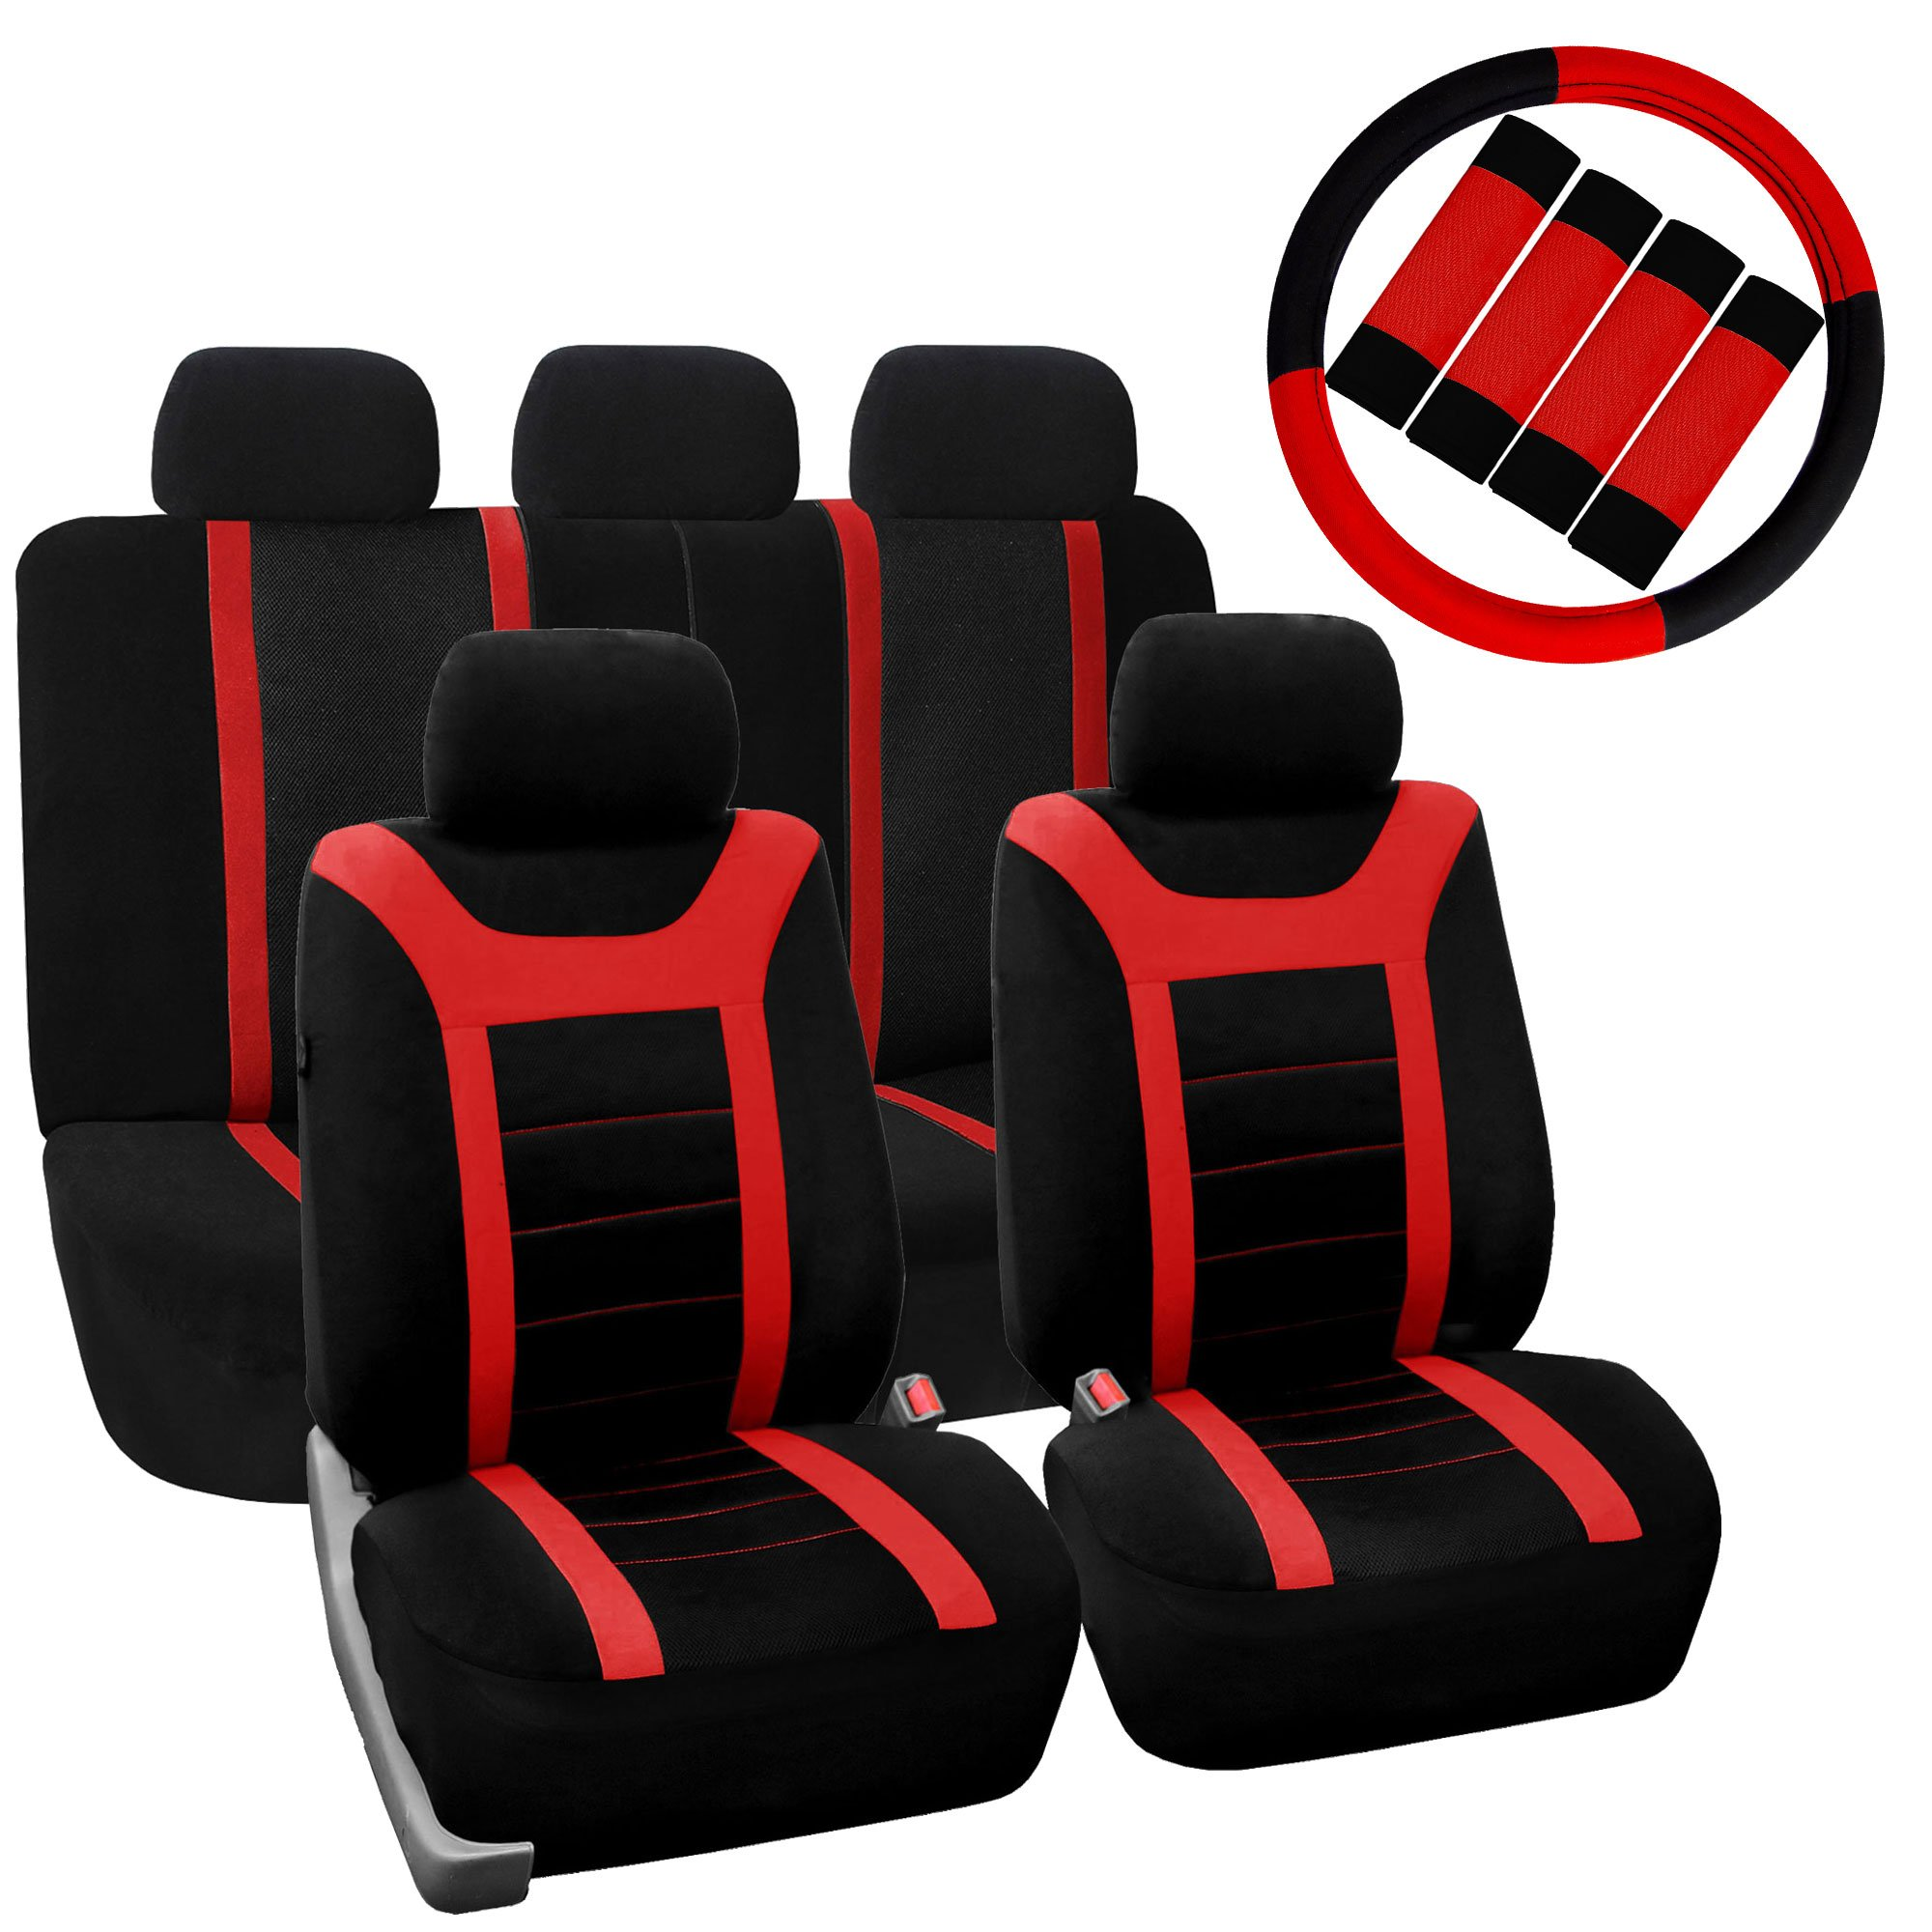 FH Group FB070115+FH2033 Sports Fabric Car Seat Covers, Airbag Compatible and Split Bench w. FH2003 Leather Steering Wheel Cover & Seat Belt Pads, Red/Black Color- Fit Most Car, Truck, SUV, or Van by FH Group